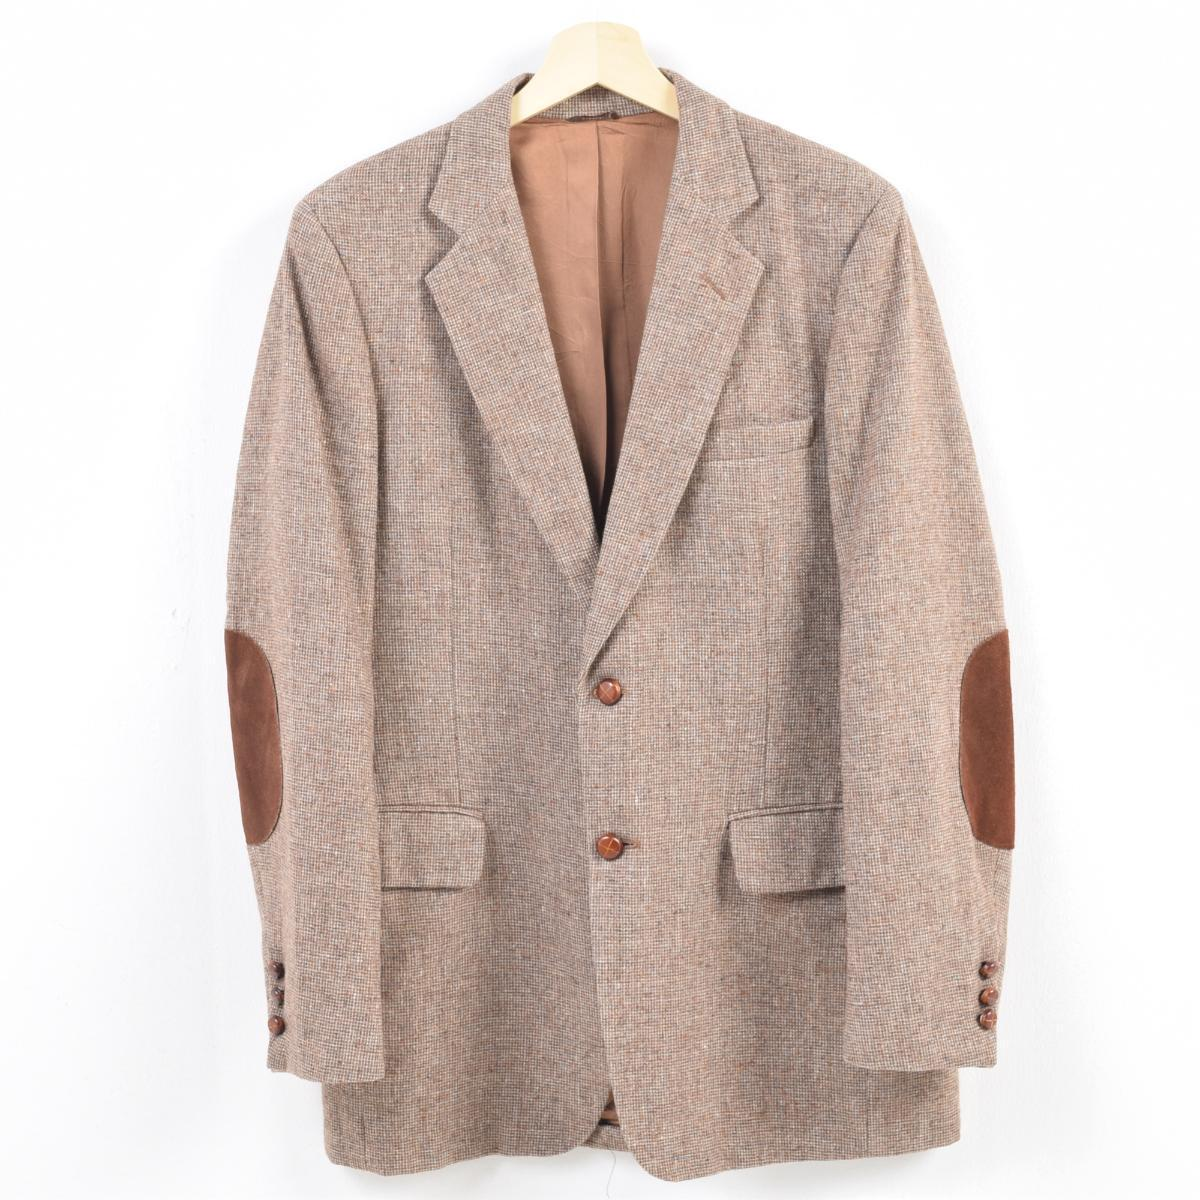 Vintage Clothing Jam Wool Tailored Jacket Men L Waw8640 With The